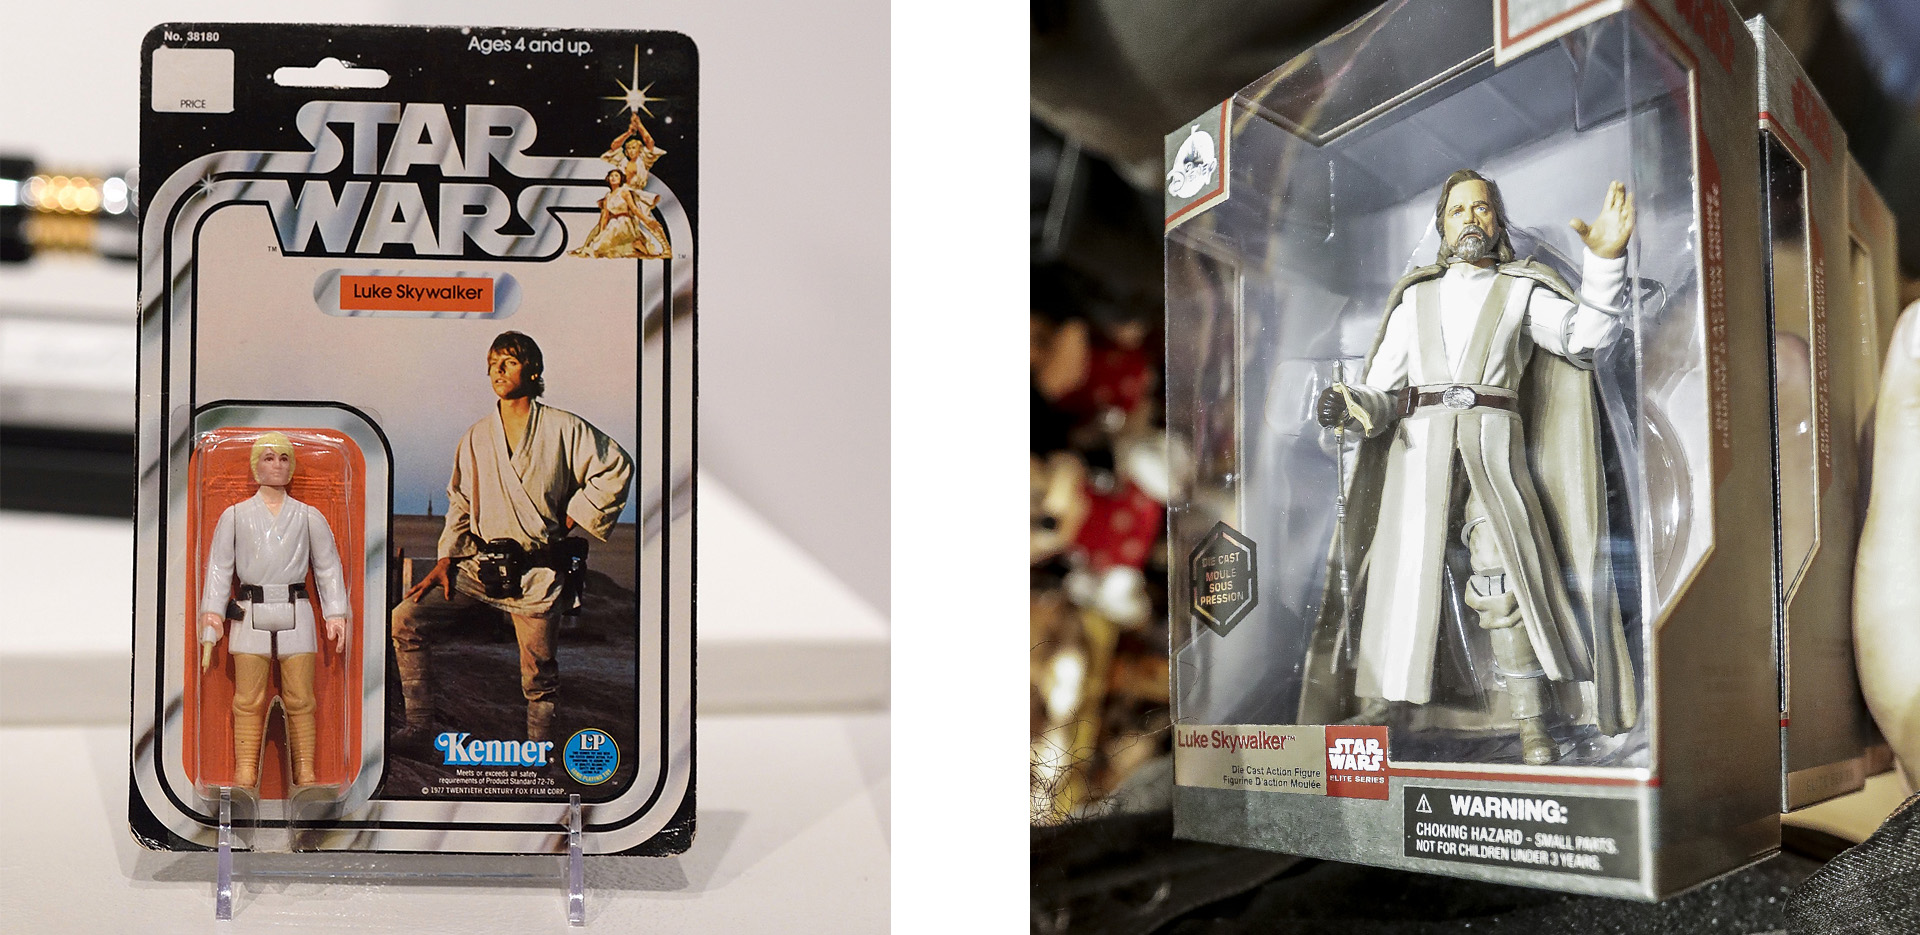 1970s Luke Skywalker action figure (Credit: Don Emmert/AFP/Getty Images) and Luke Skywalker, from Star Wars: The Last Jedi, action figure (Credit: Jeenah Moon/Bloomberg via Getty Images)